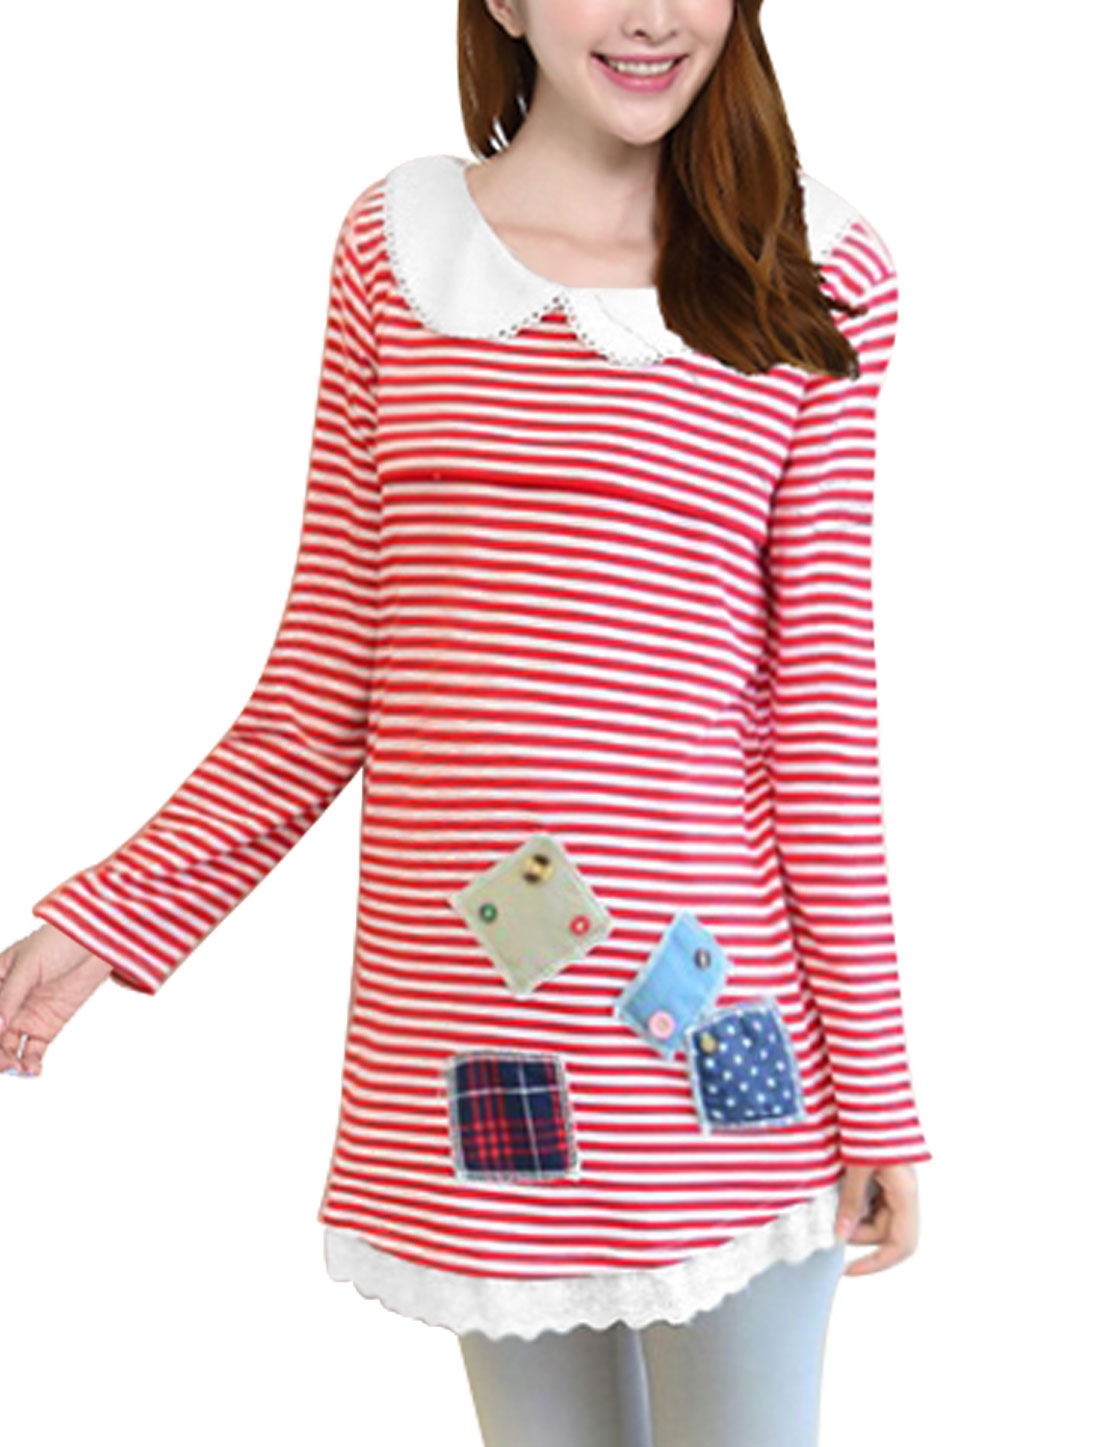 XK17 Maternity Doll Collar Stars Plaids Applique Leisure Blouse Red White XL/L (US 14)